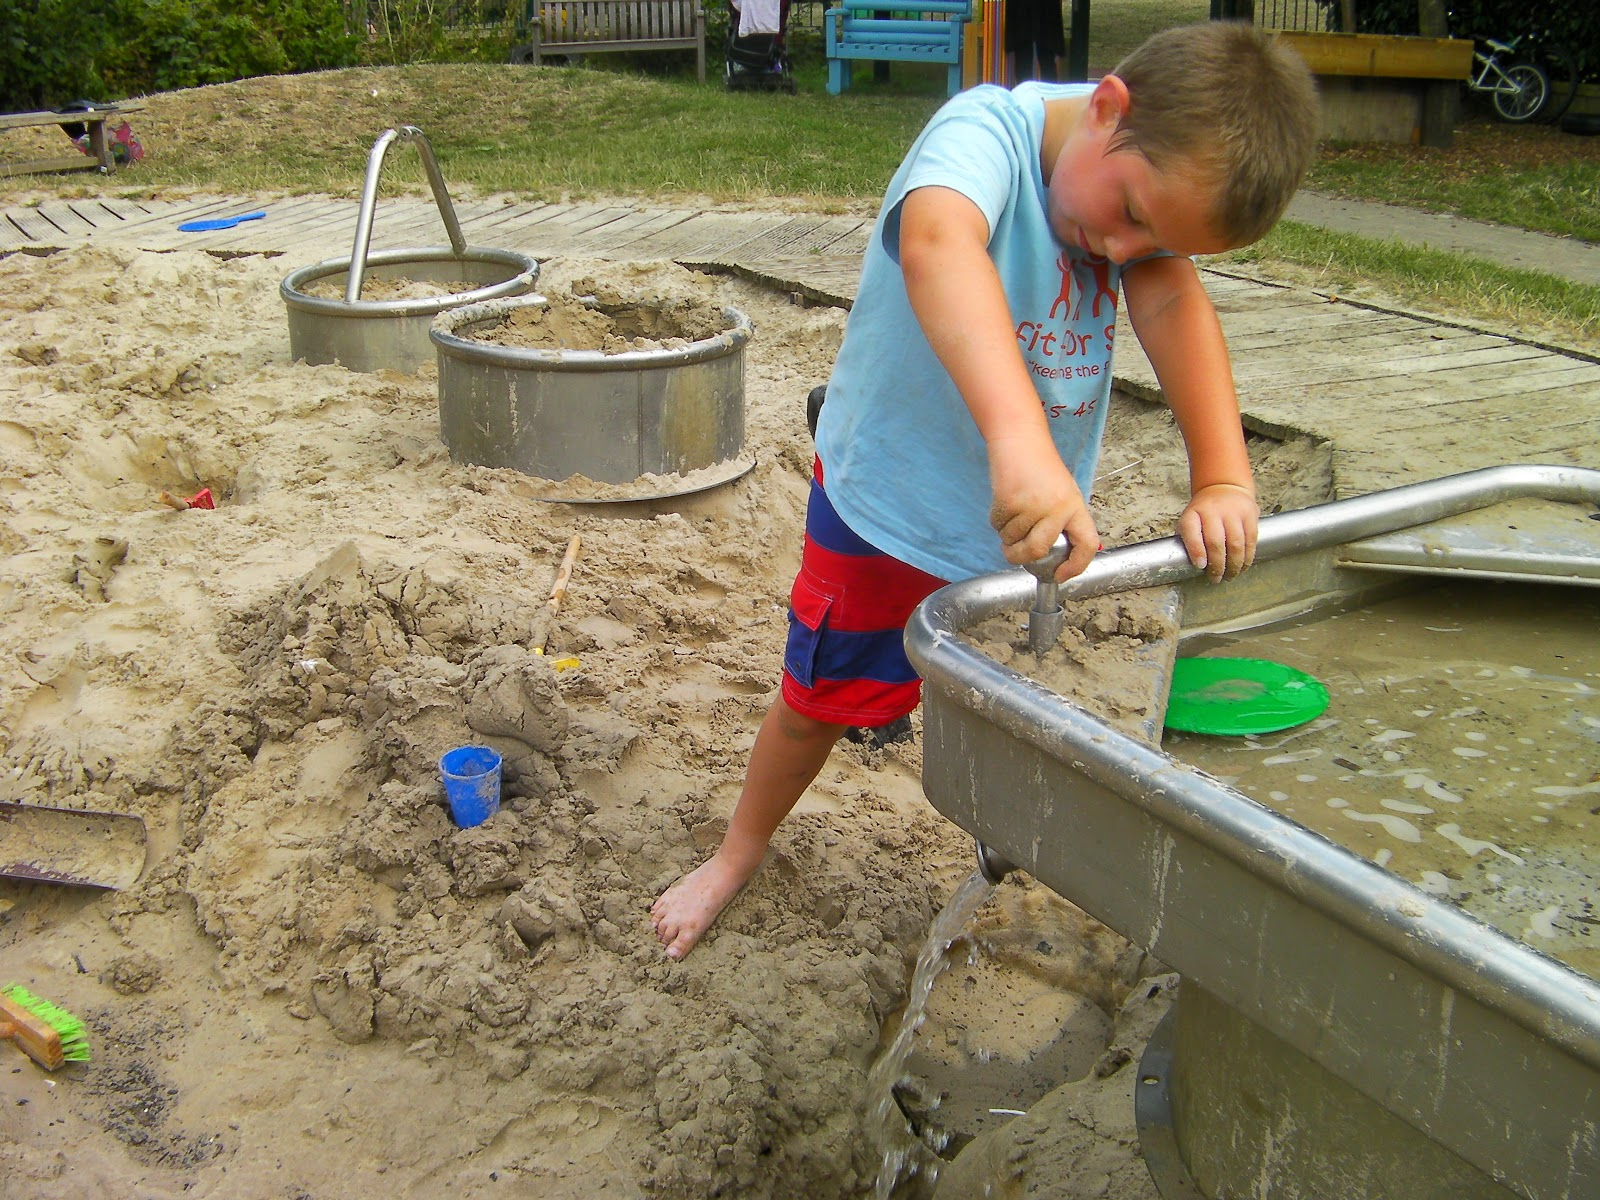 landport adventure playground sandpit arundel st portsmouth